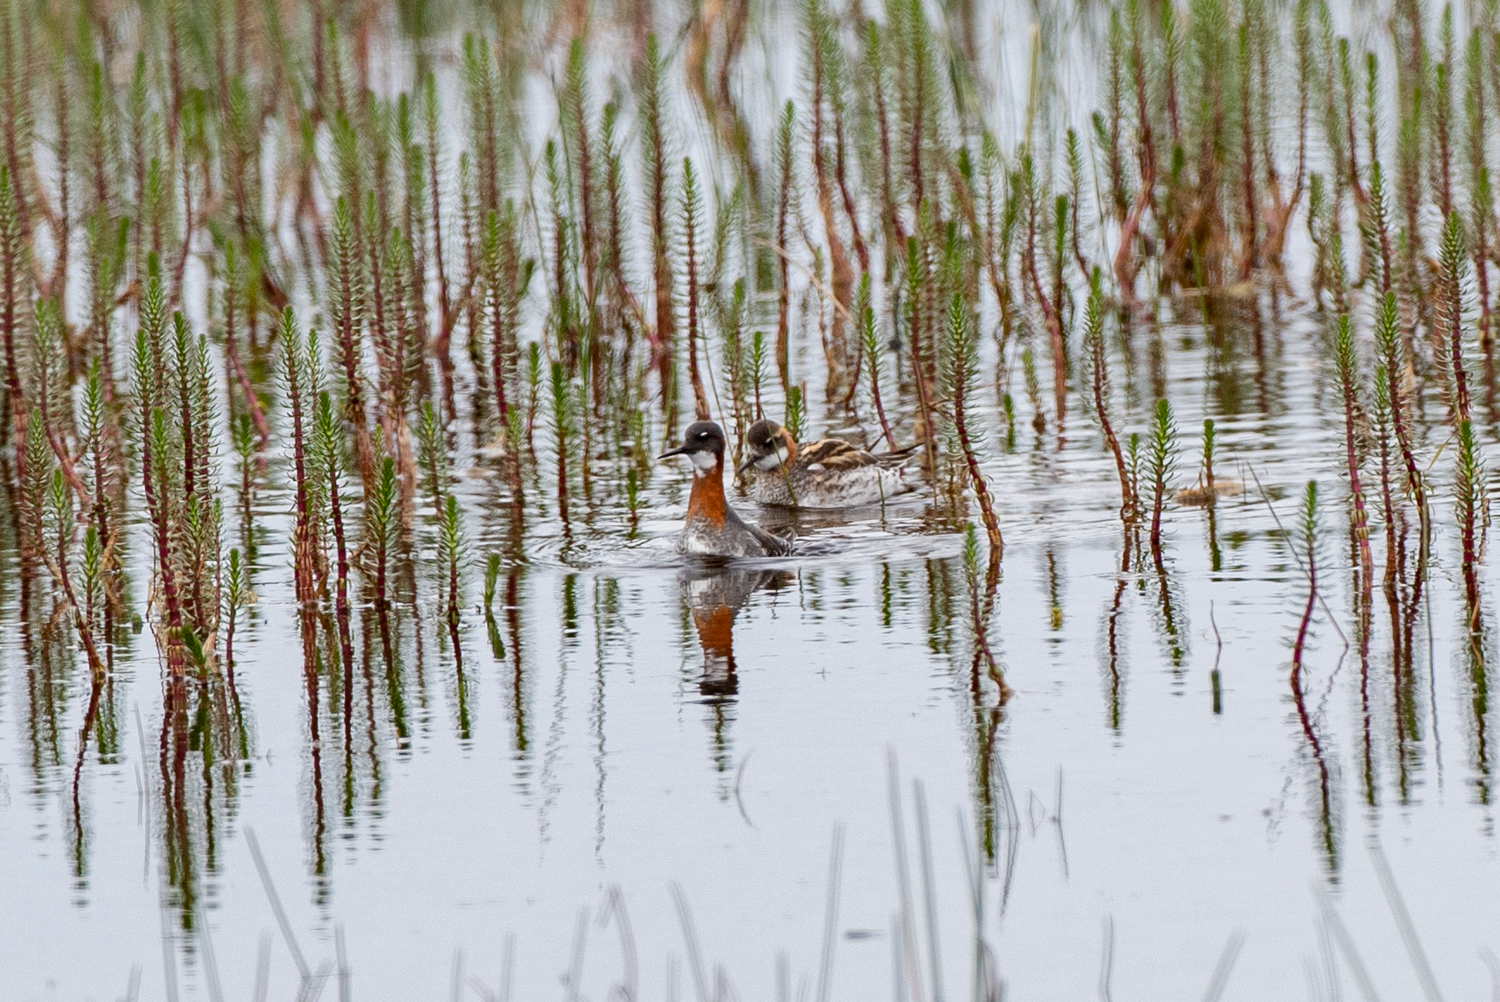 Female with male, Red-necked Phalarope